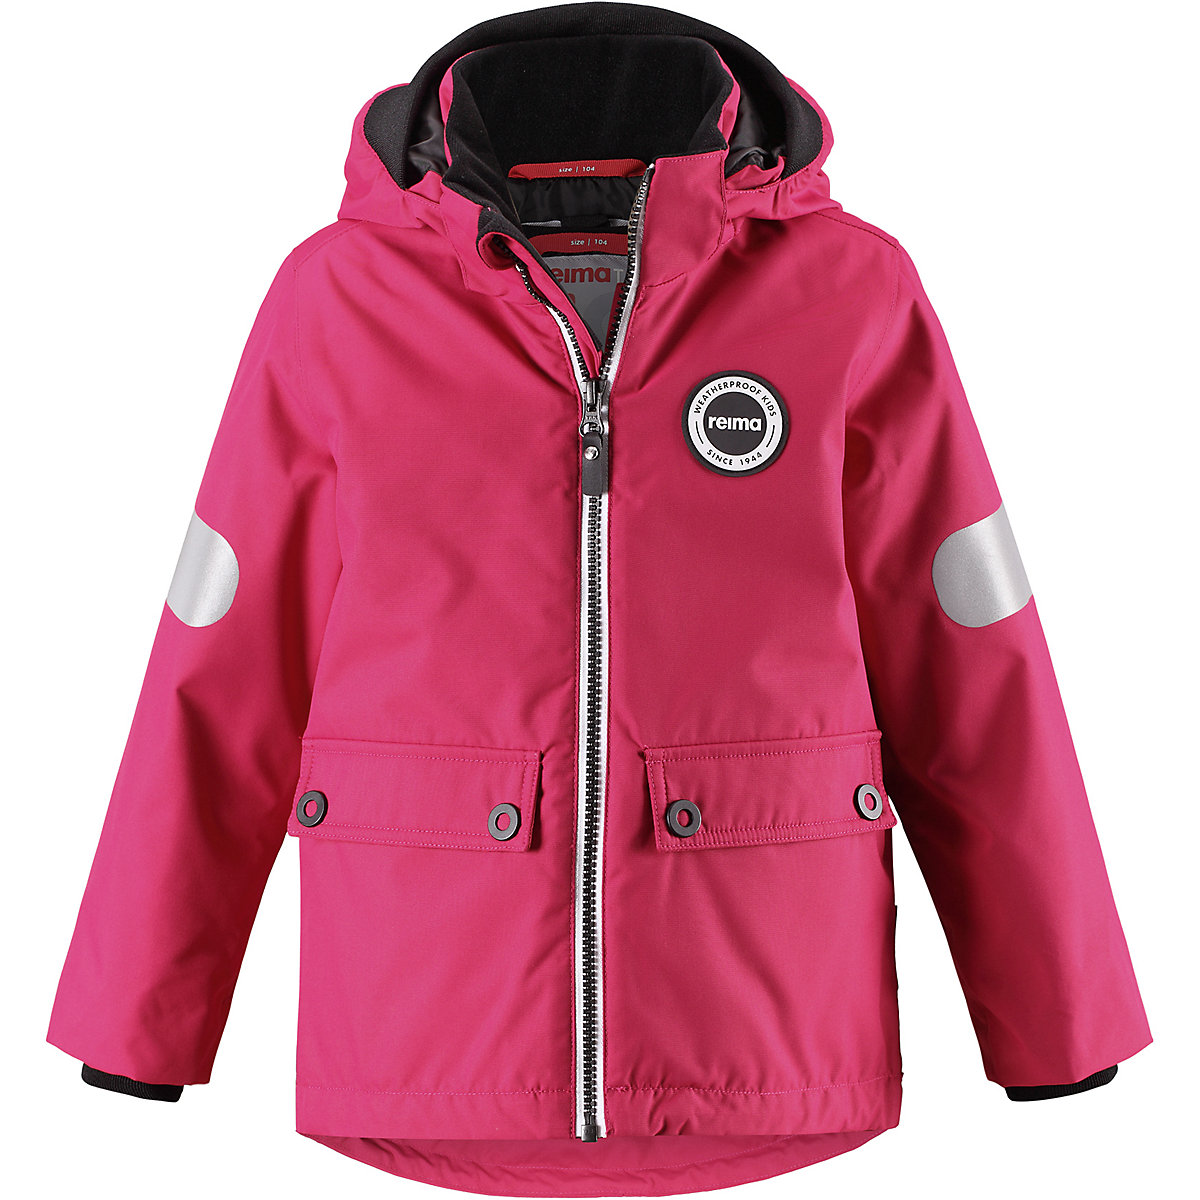 REIMA Jackets 8688889 For girls Polyester  winter fur baby clothing girl Jacket duhan motocross off road racing jacket motorcycle jackets body armor protective moto jacket motorbike windproof jaqueta clothing